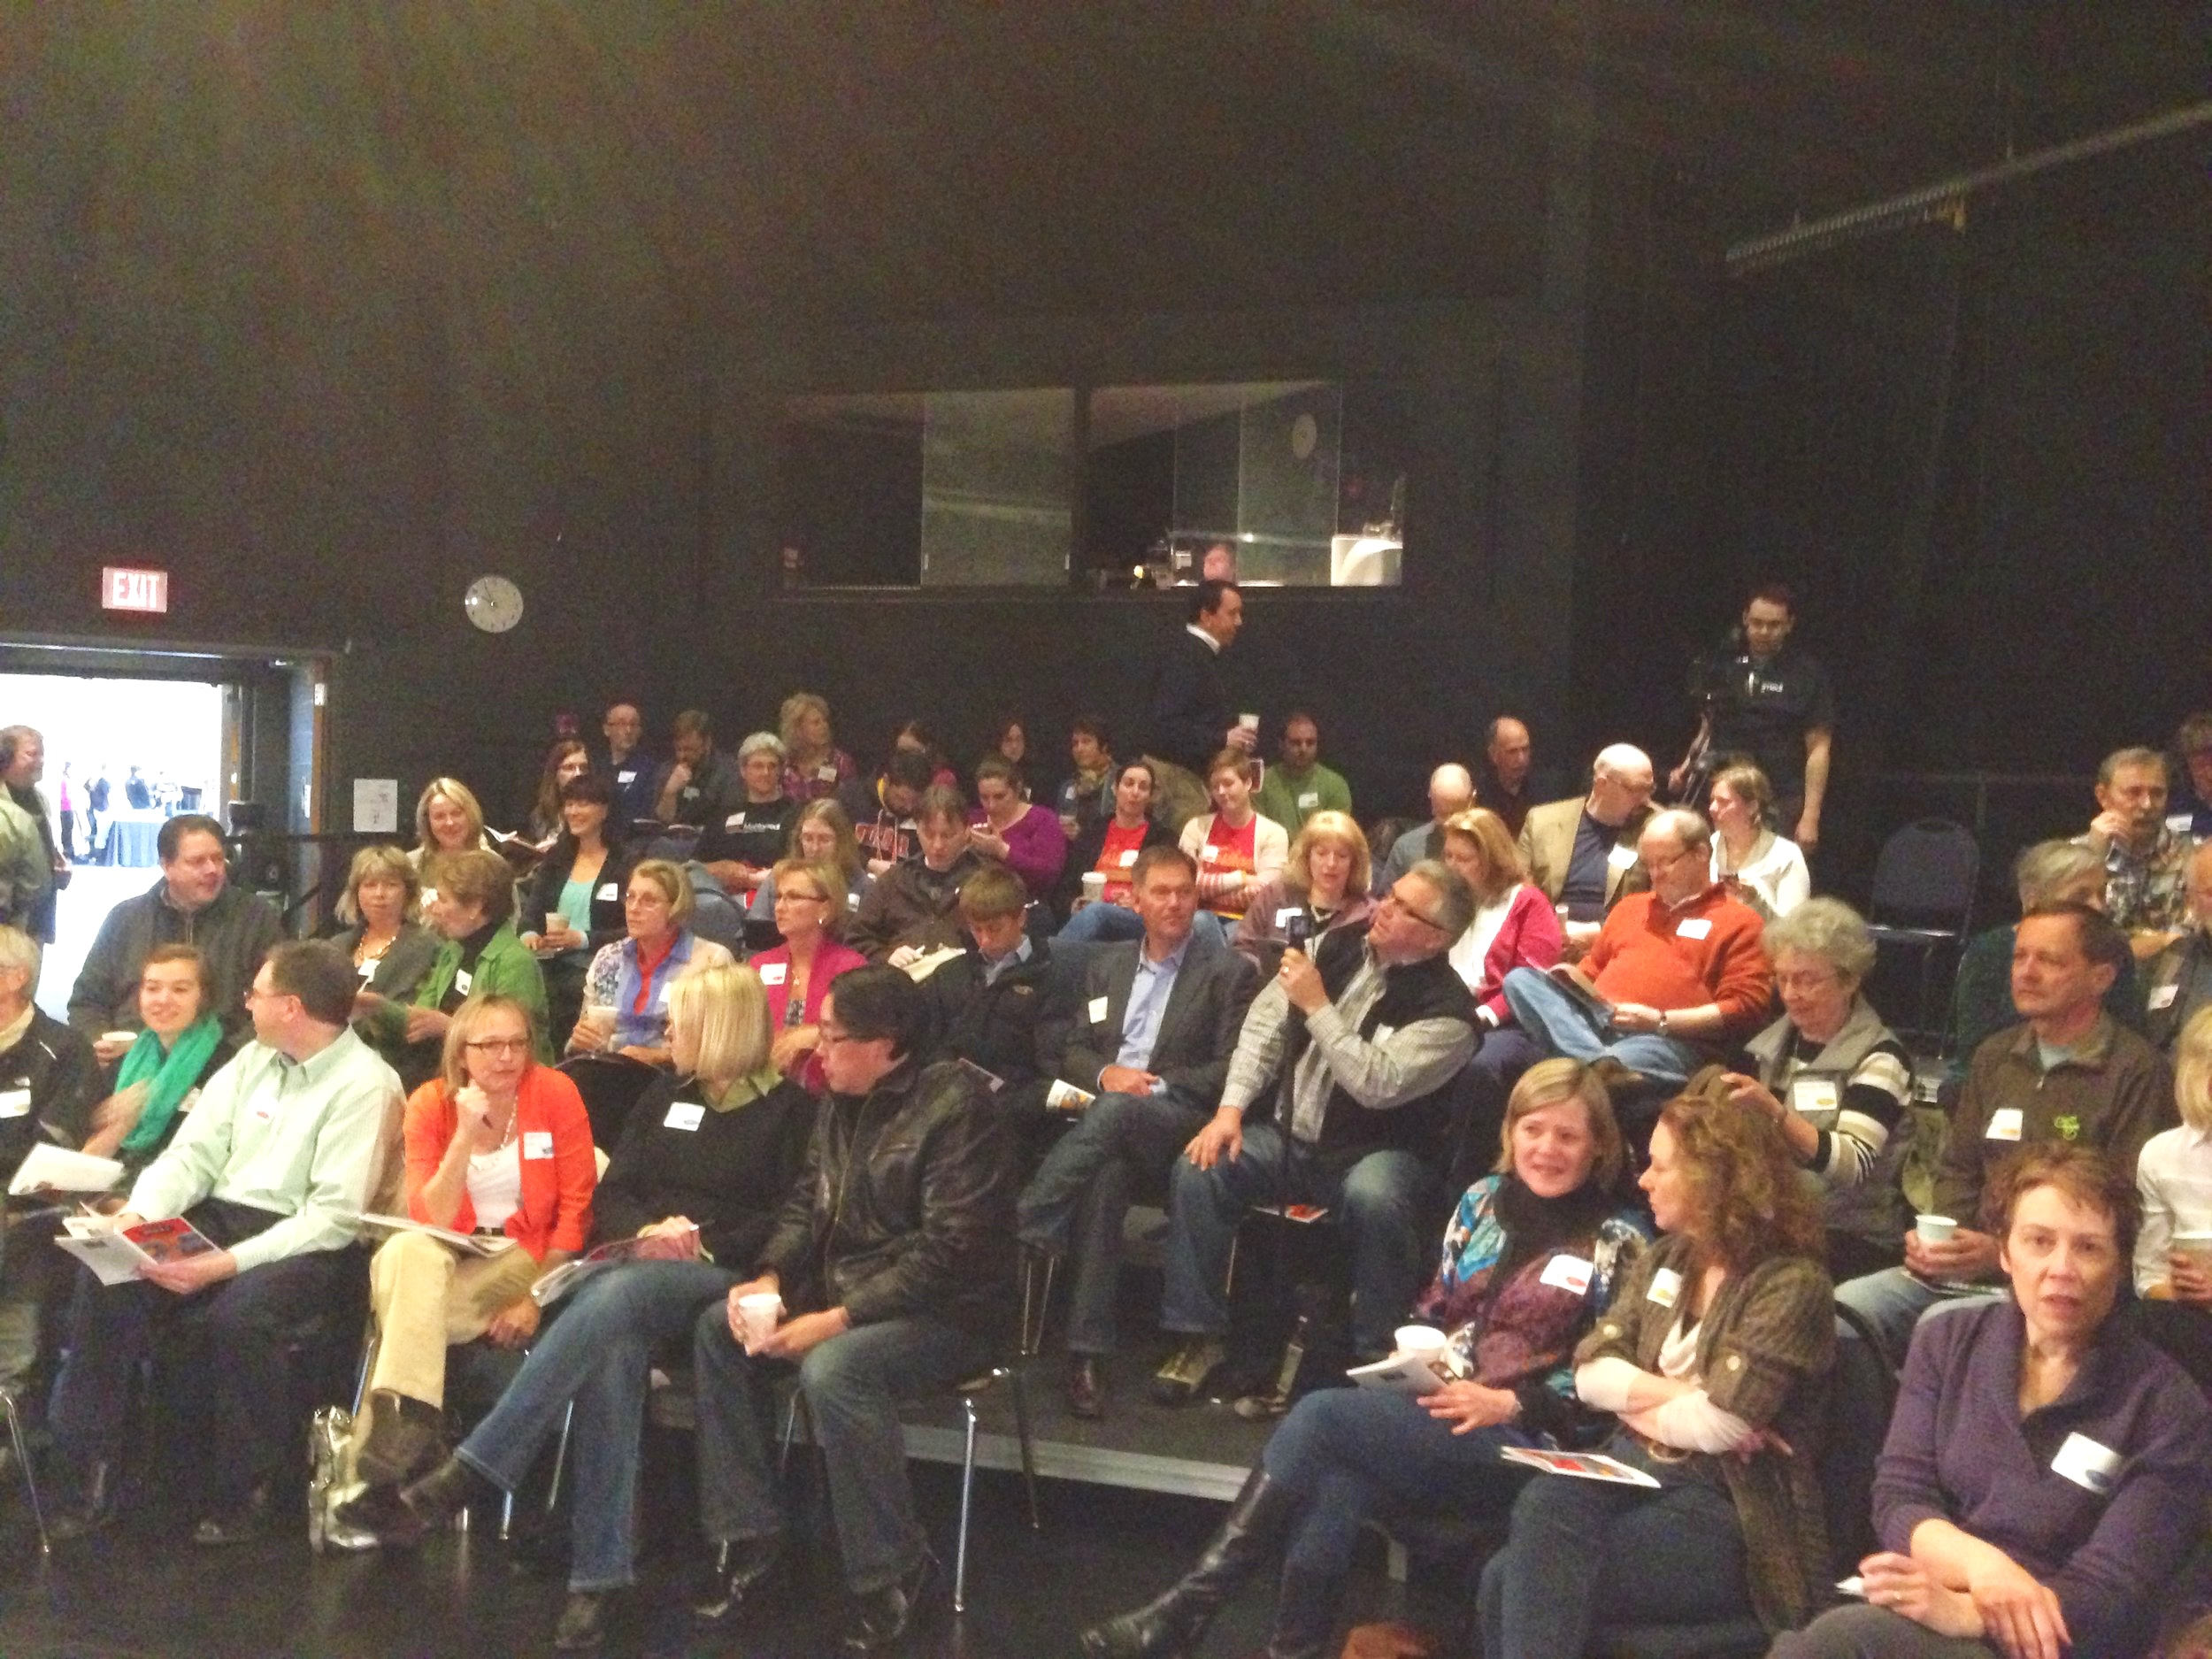 The format of TEDxMahtomedi encourages audience engagement and vibrant conversation.